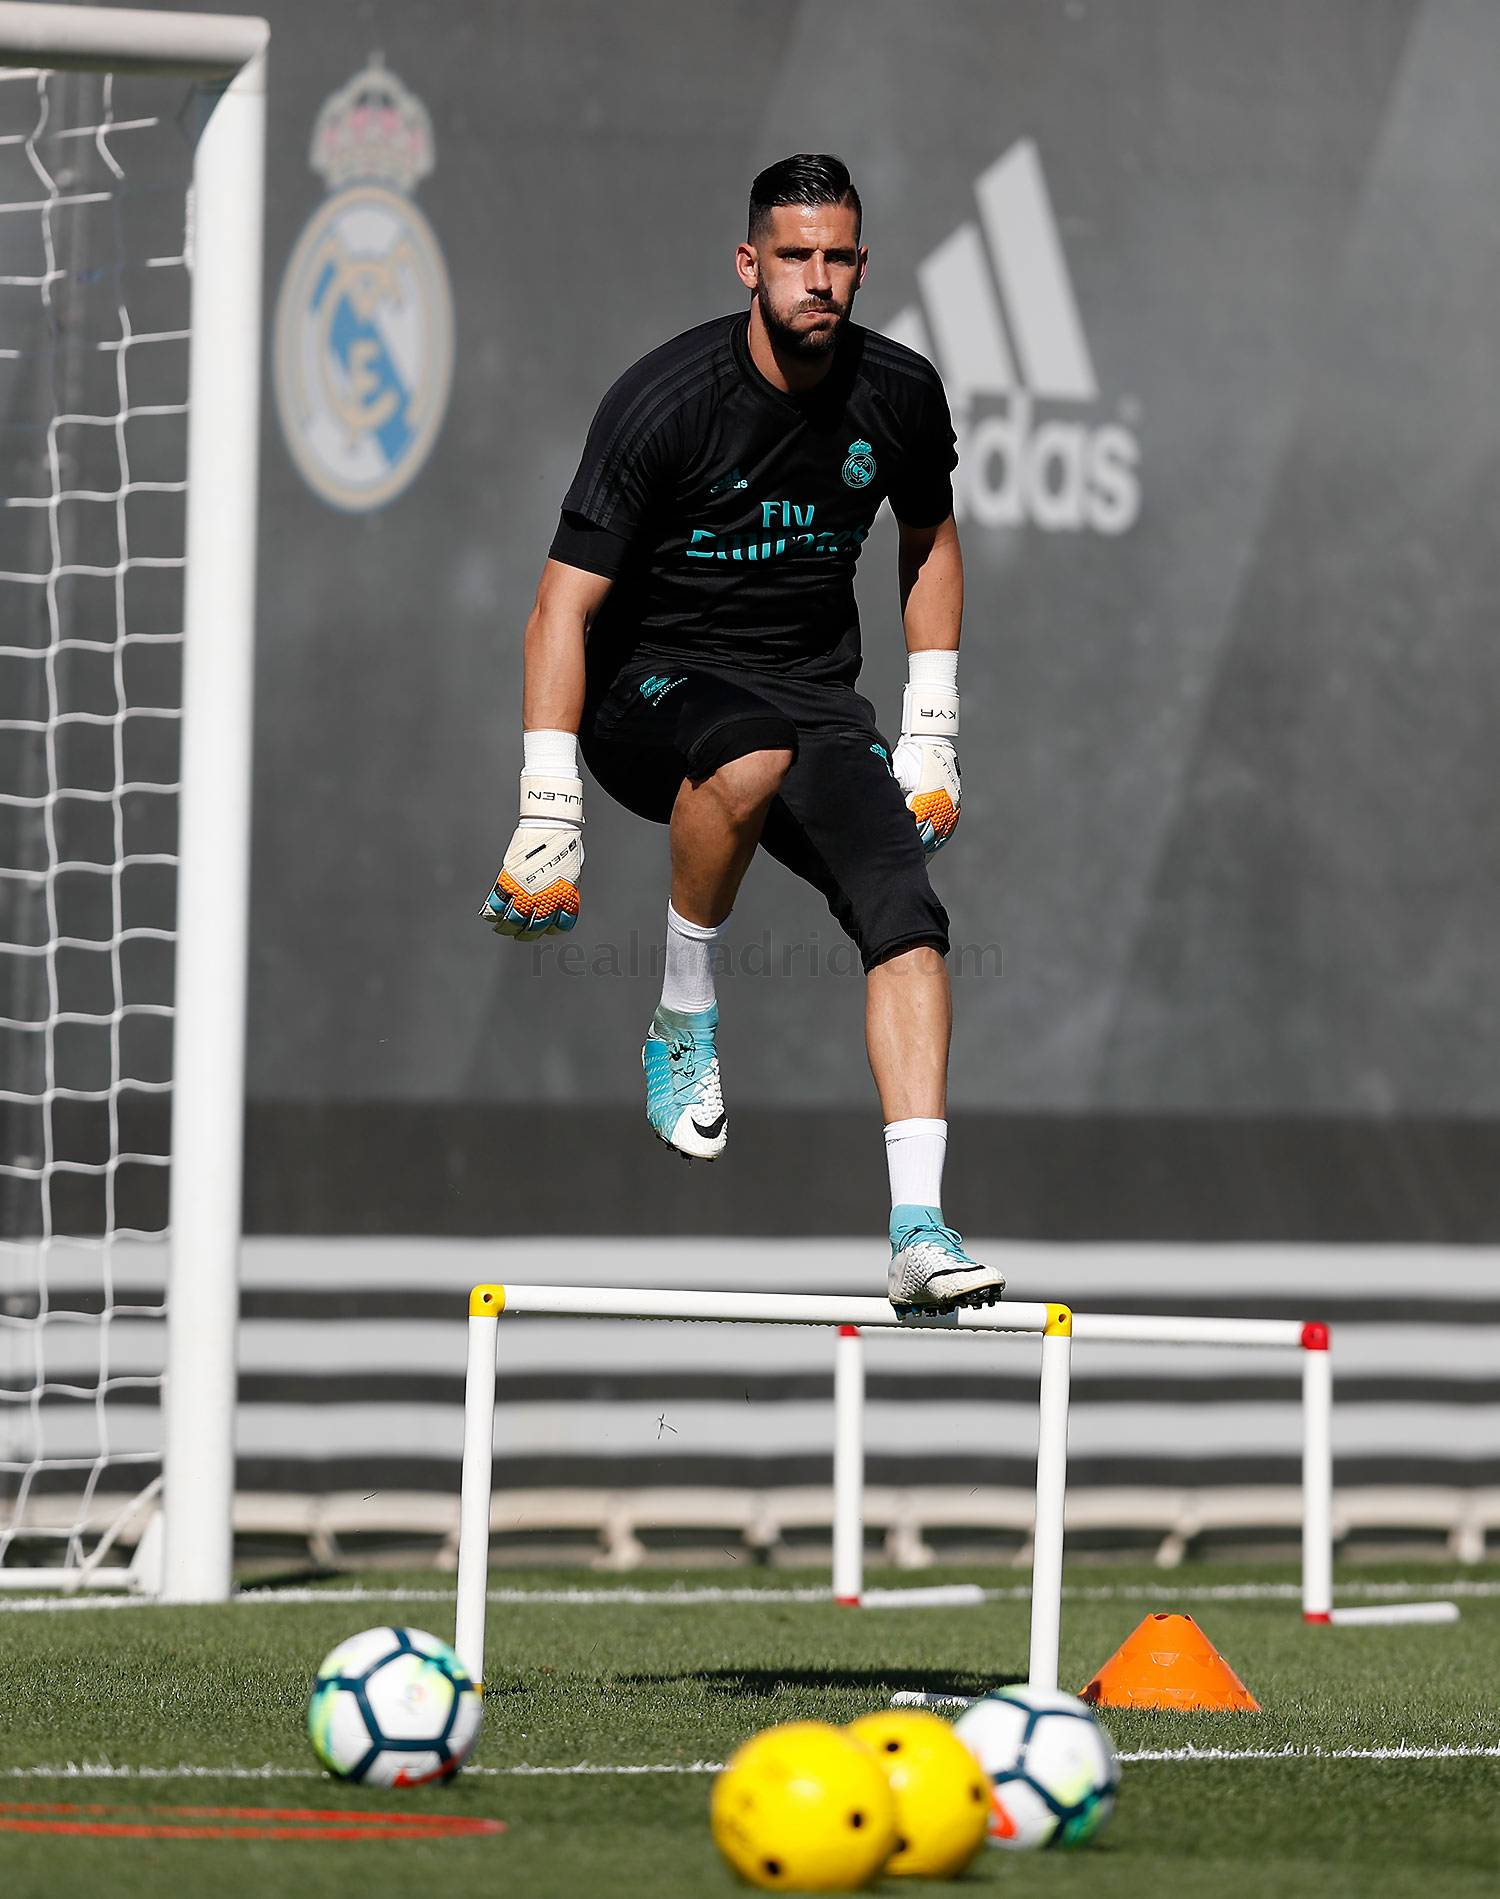 Real Madrid - Entrenamiento del Real Madrid - 04-09-2017